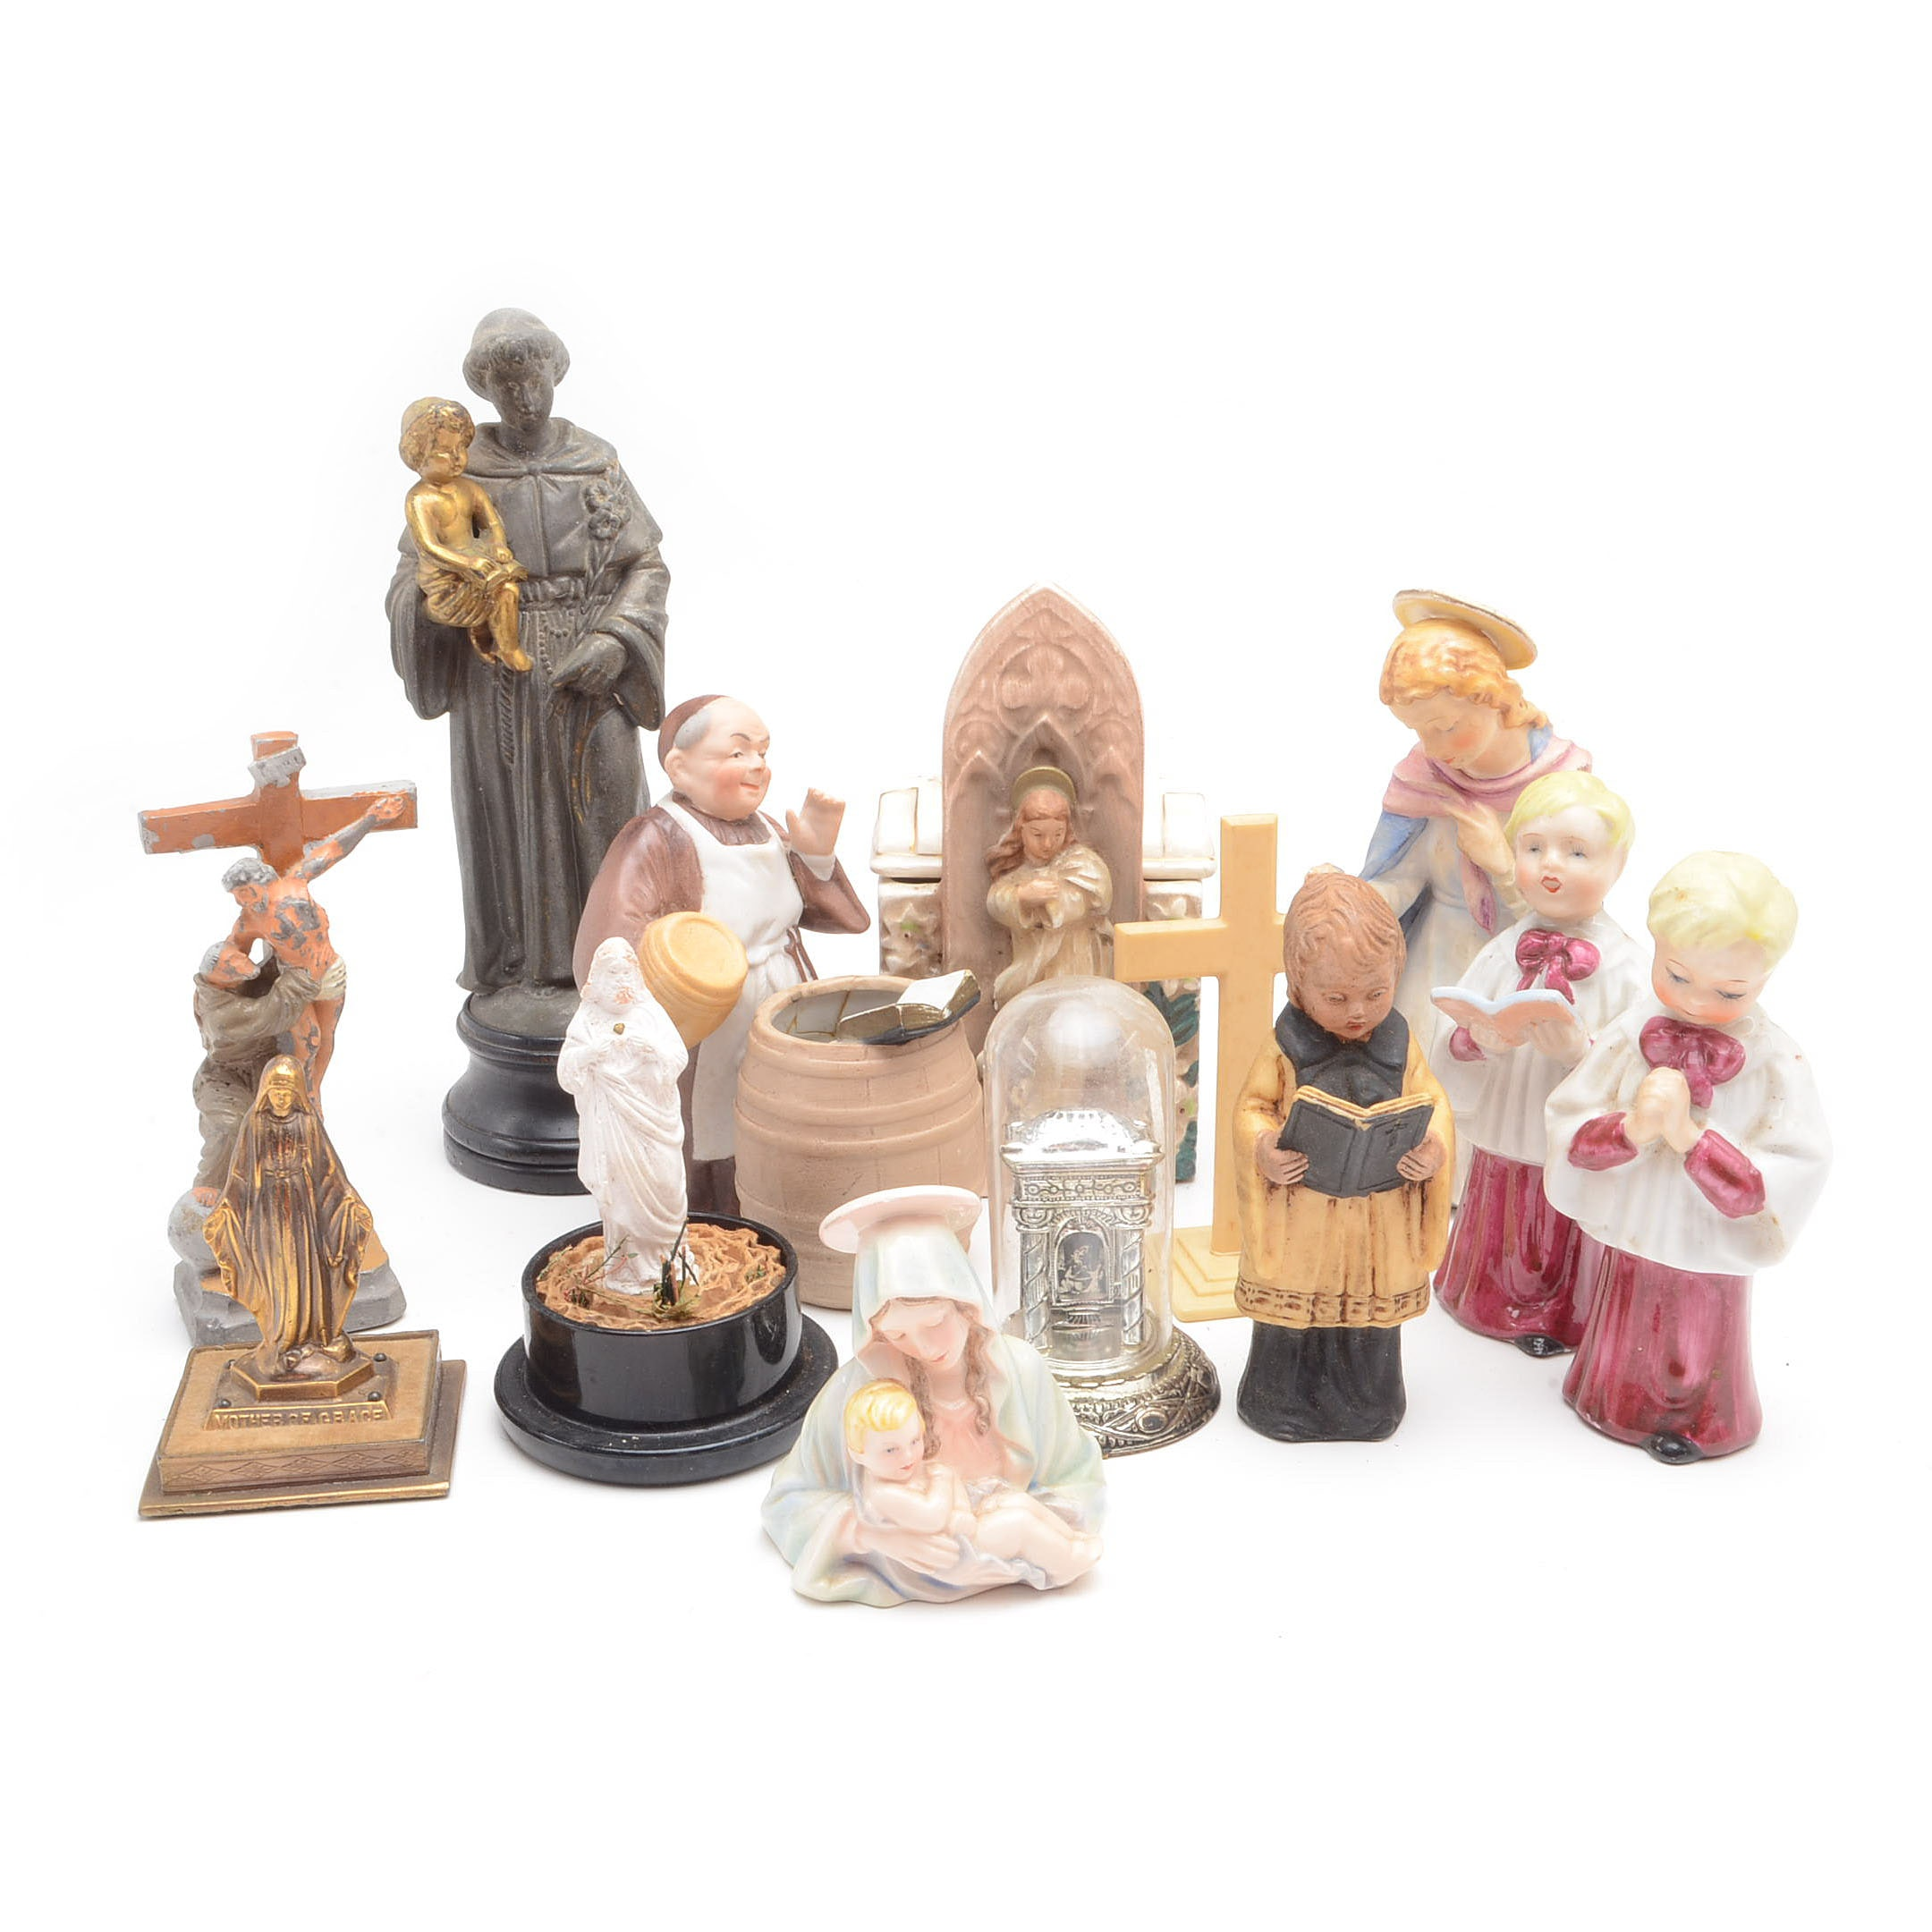 Collection of Religious Figurines, Including Vintage M. I. Hummel